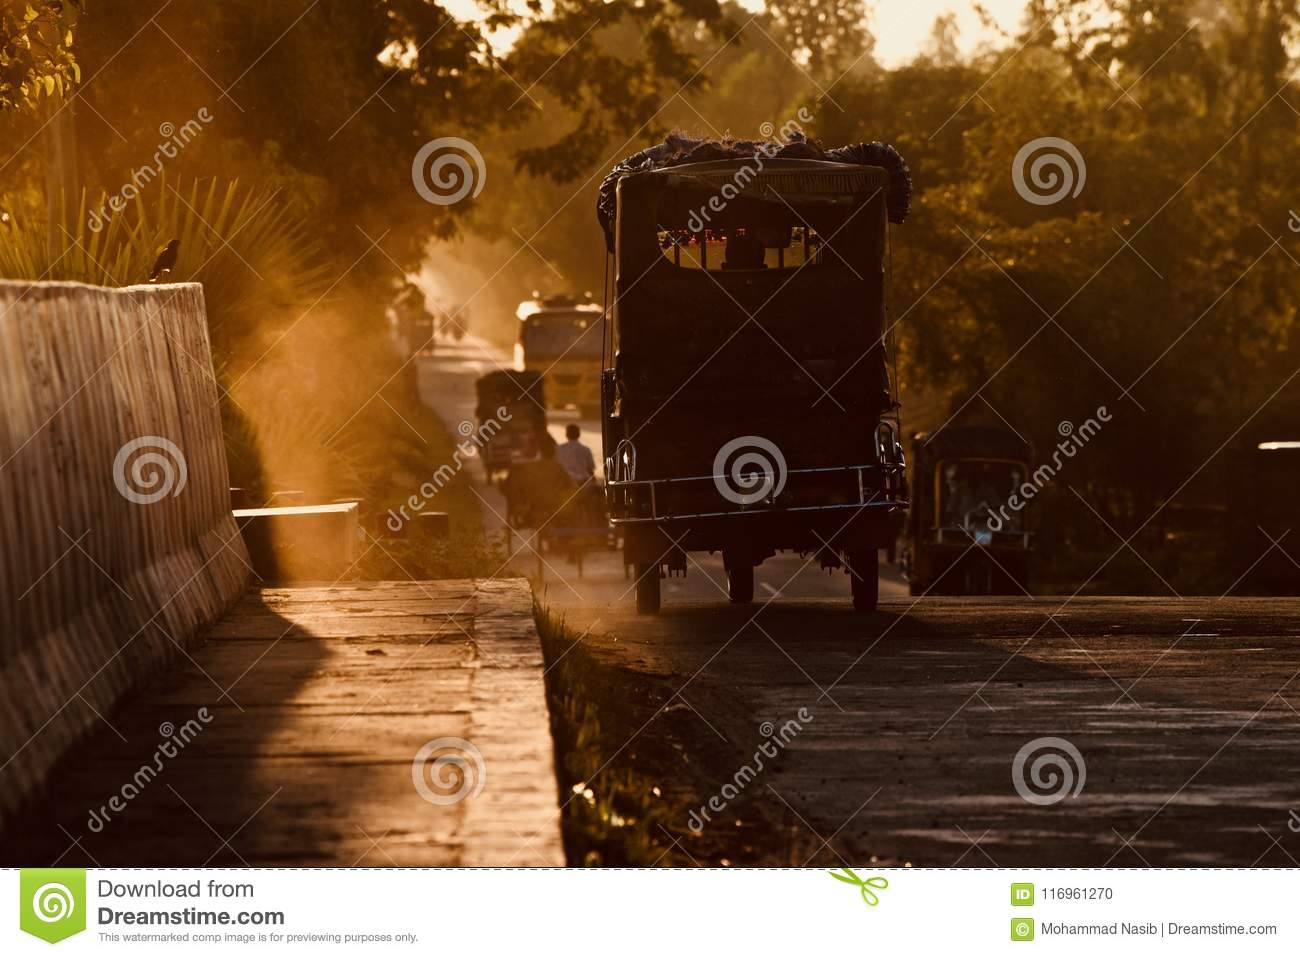 Download Traditional Auto Three Wheeler Is Running On A Road In The Afternoon Stock Photo - Image of auto, creative: 116961270